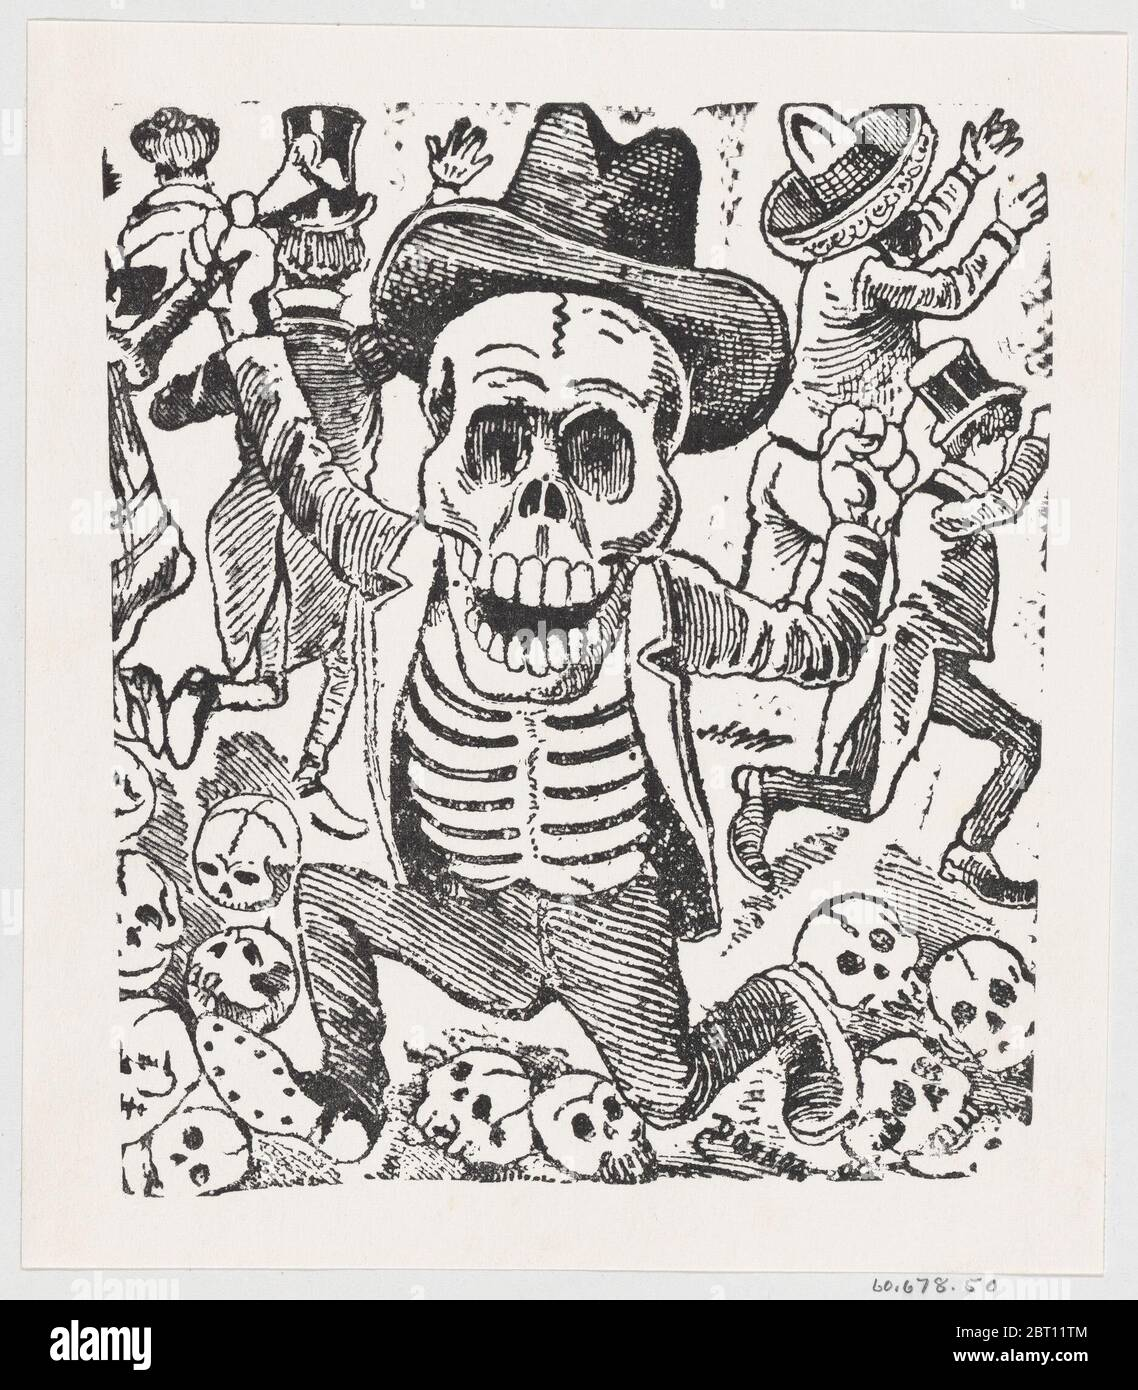 A skeleton holding a bone and leaping over a pile of skulls while people flee, from a broadside entitled 'Las bravisimas calaveras Guatemaltecas', ca. 1907. Stock Photo